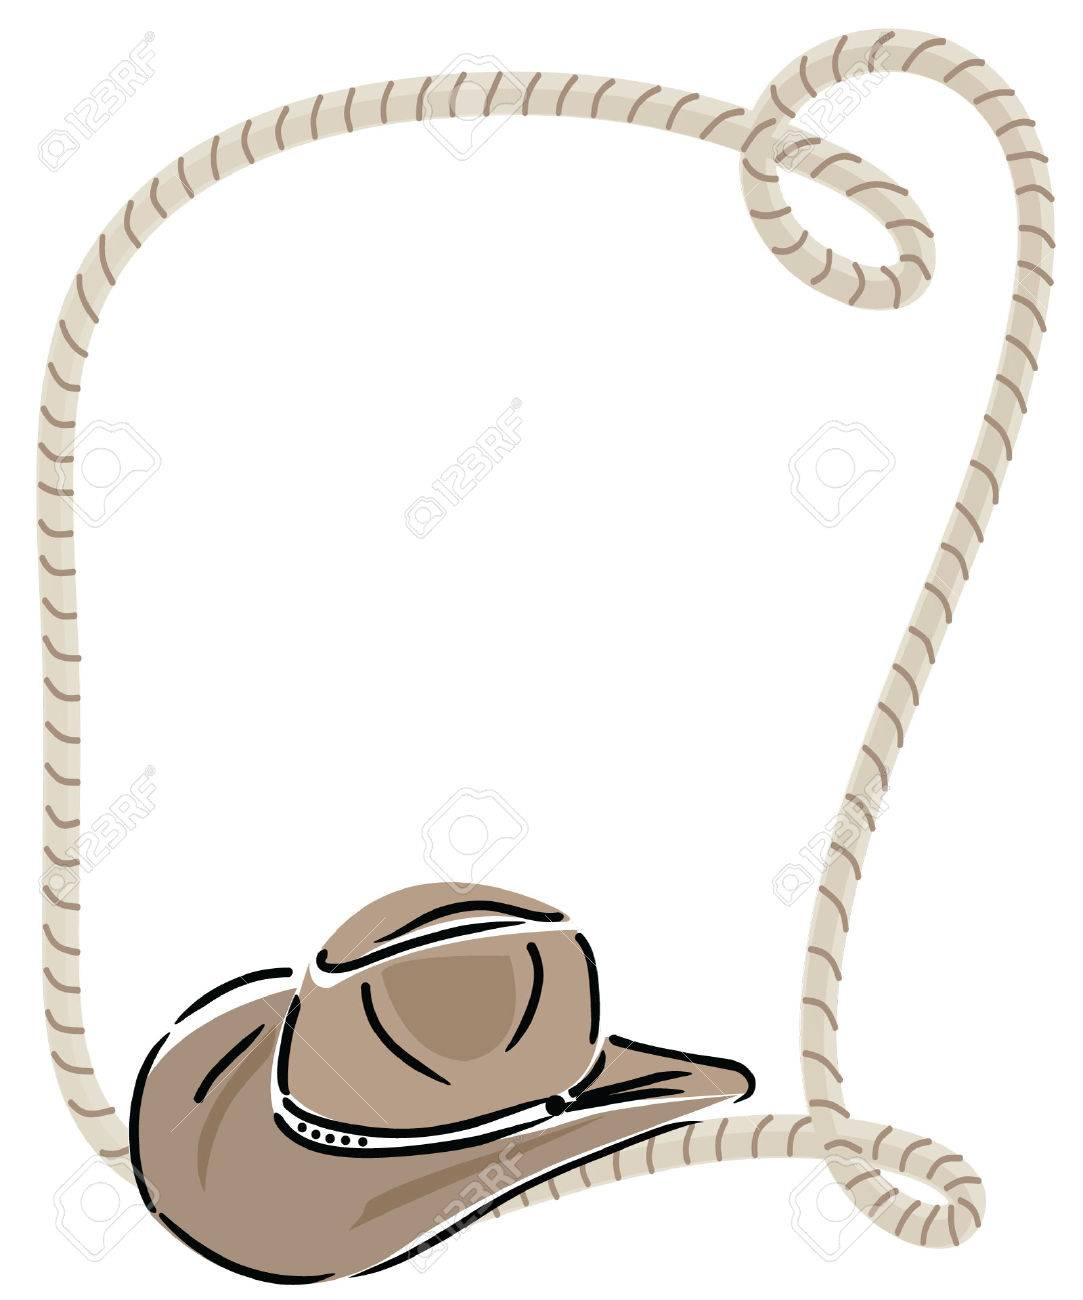 cowboy hat and rope royalty free cliparts, vectors, and stock illustration.  image 74950691.  123rf